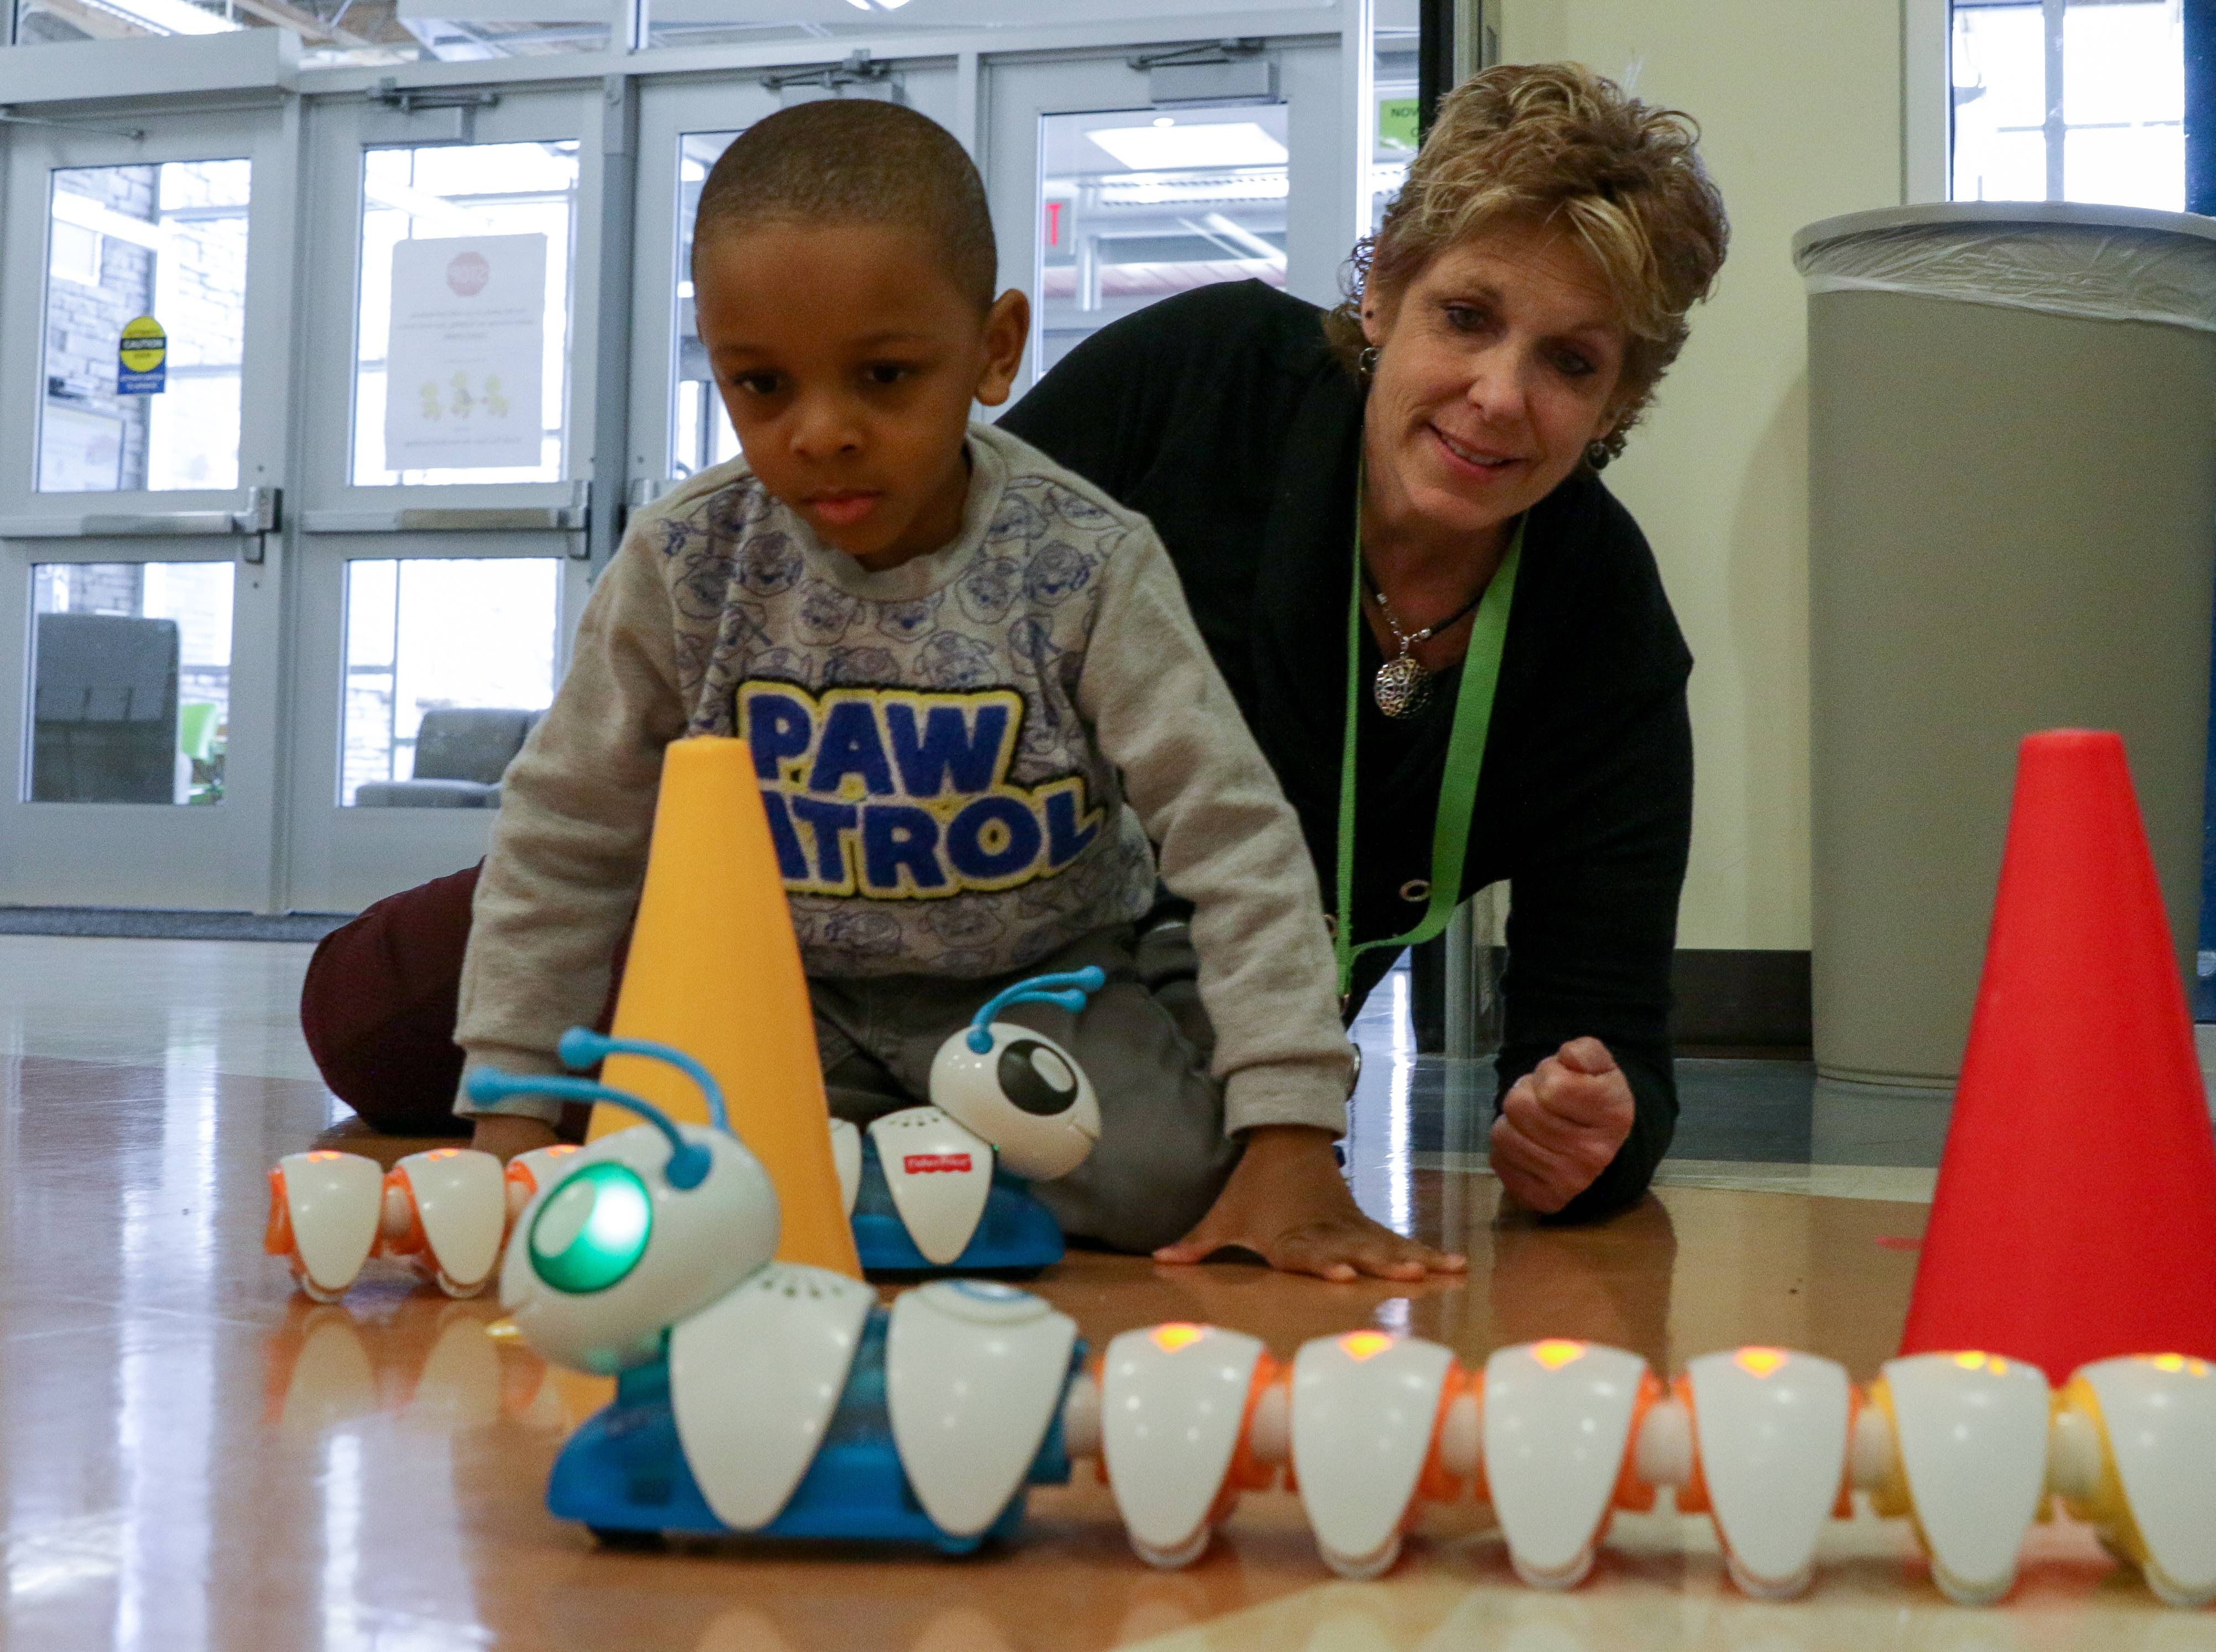 Assistant teacher Dawn Enright works with Javion Stevens, 4, as preschoolers at the Ann Reid Early Childhood Center in Naperville Unit District 203 experience an Hour of Code with computer coding basics. Javion was working with an educational toy called the Code-a-pillar, attaching pieces with different arrows to direct it to move in a circle around a cone.